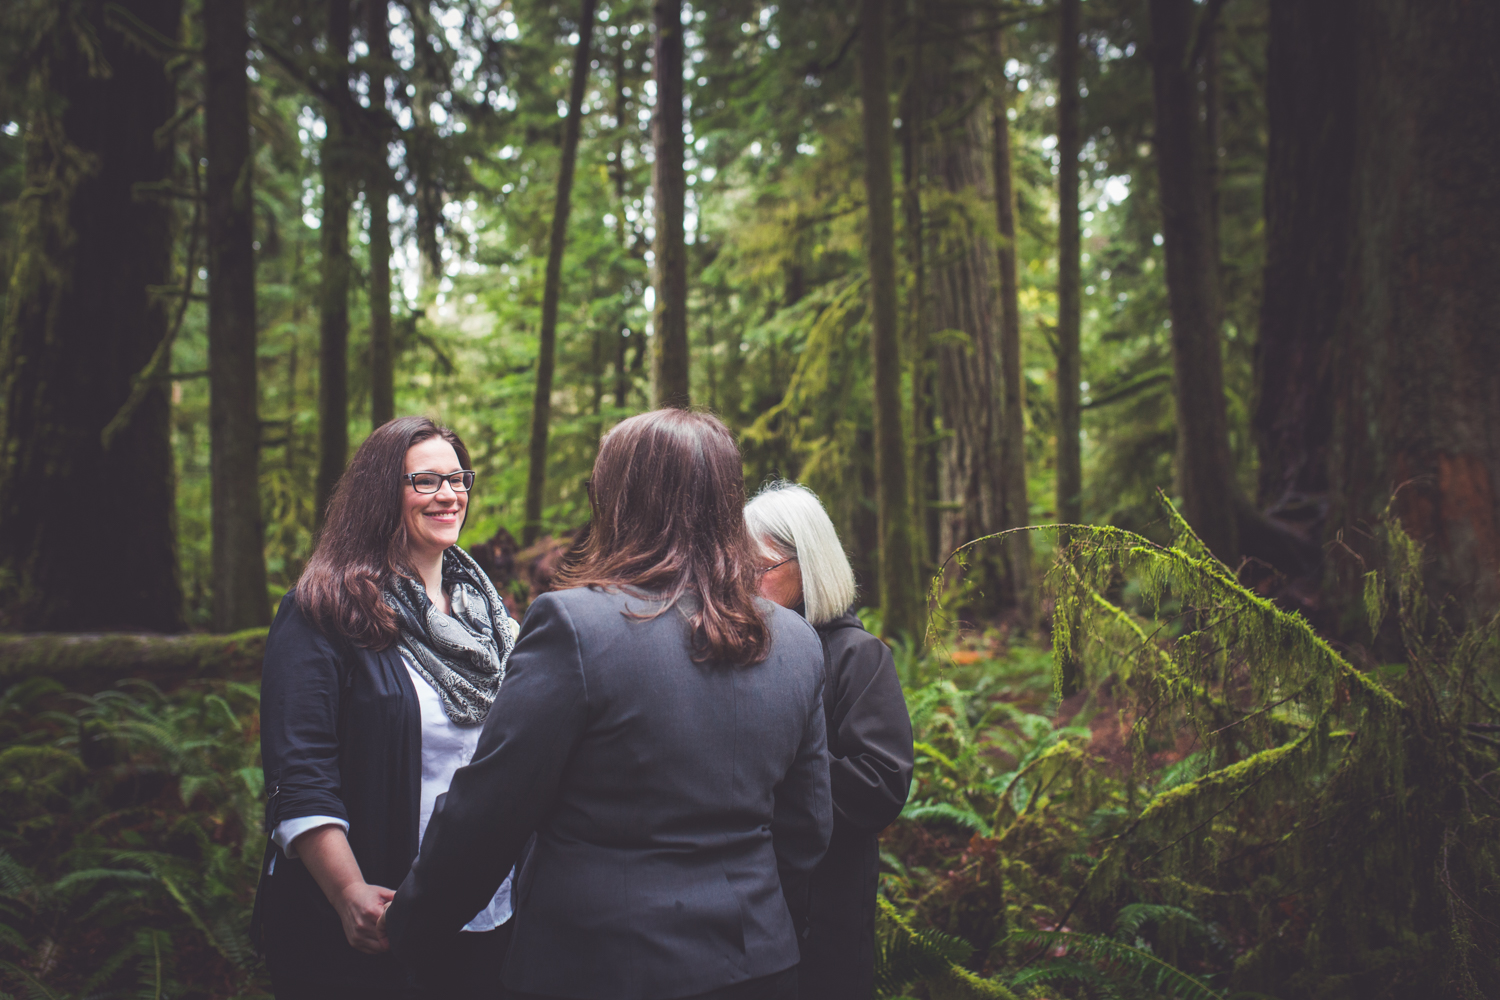 cathedral-grove-elopement-photos-17.jpg